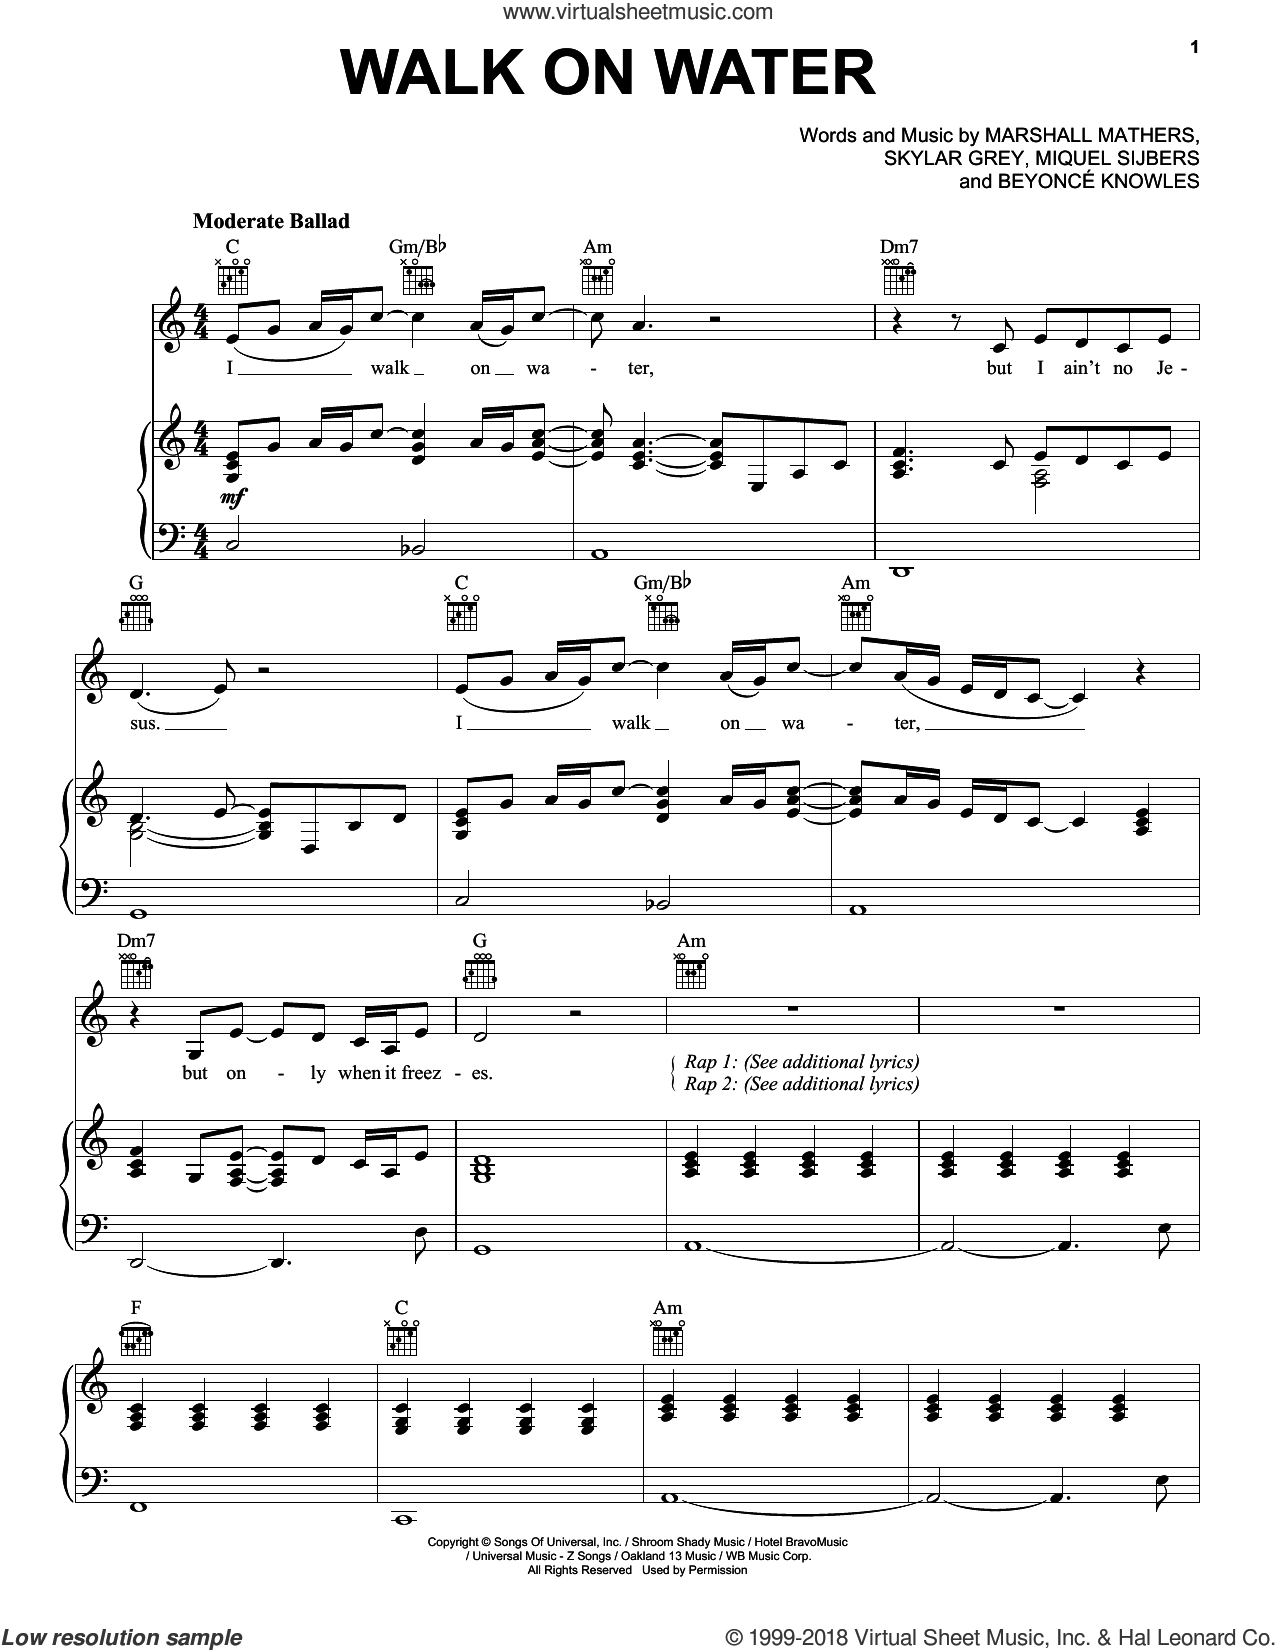 Walk On Water sheet music for voice, piano or guitar by Beyonce, Beyonce Knowles, Marshall Mathers, Miquel Sijbers and Skylar Grey, intermediate skill level